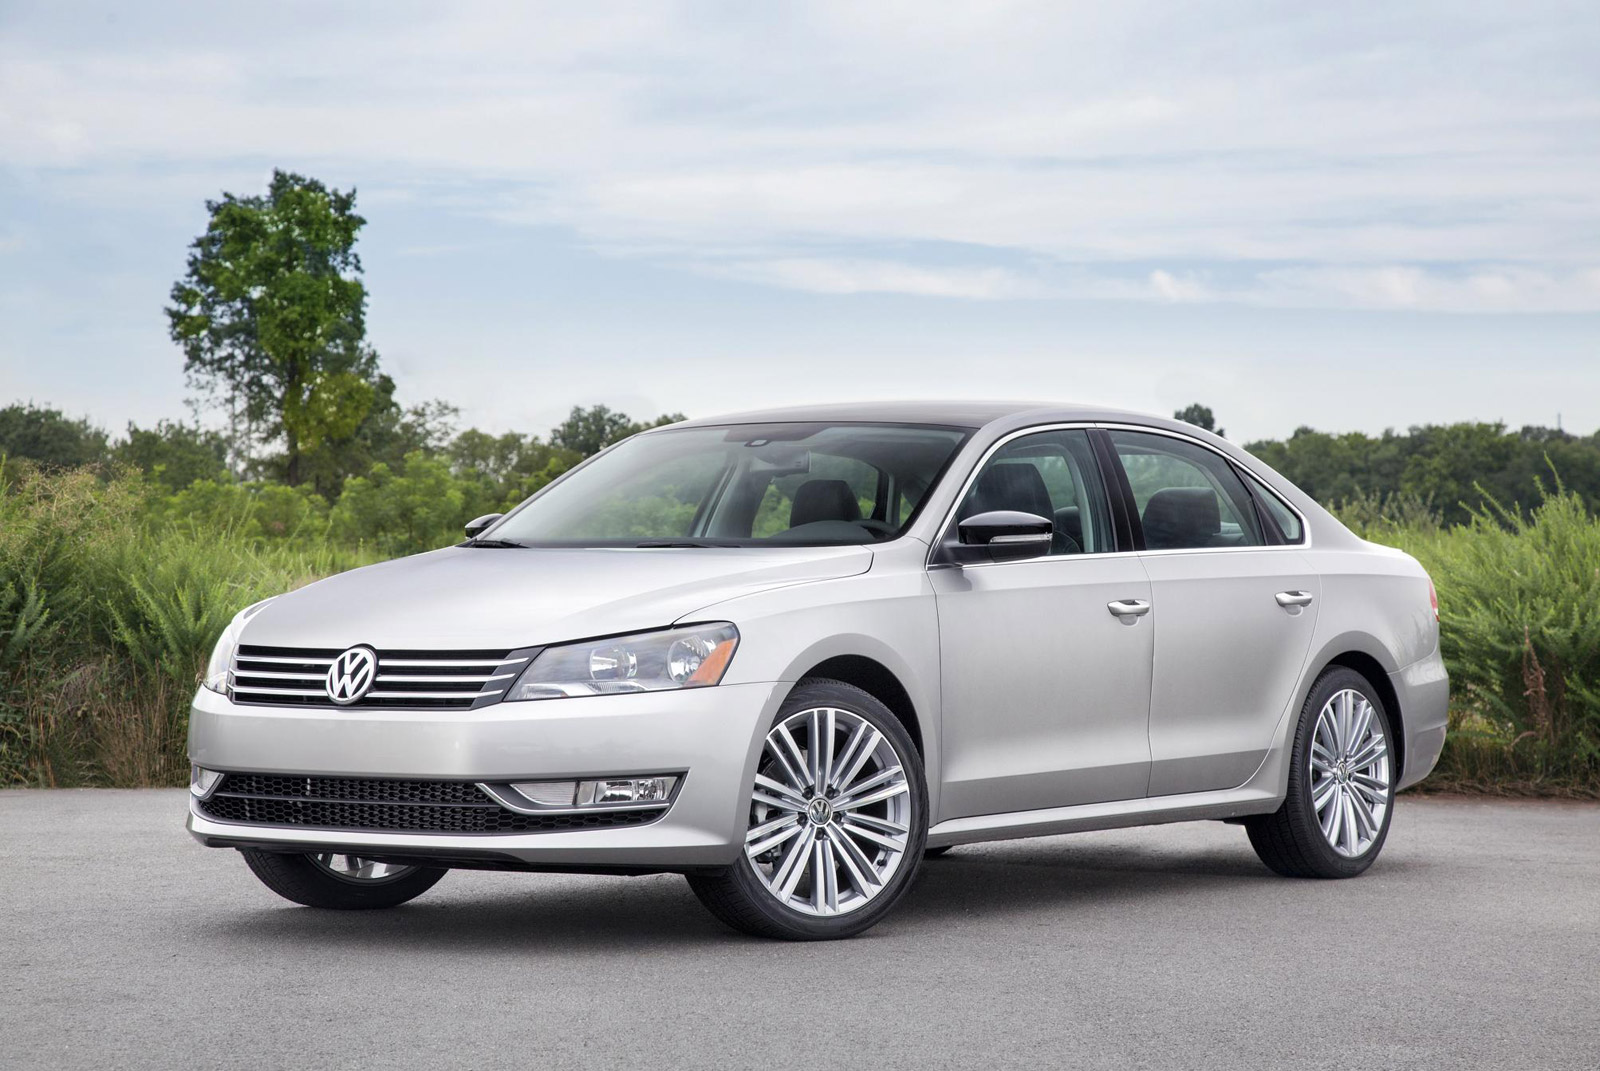 2014 Volkswagen Passat Vw Review Ratings Specs Prices